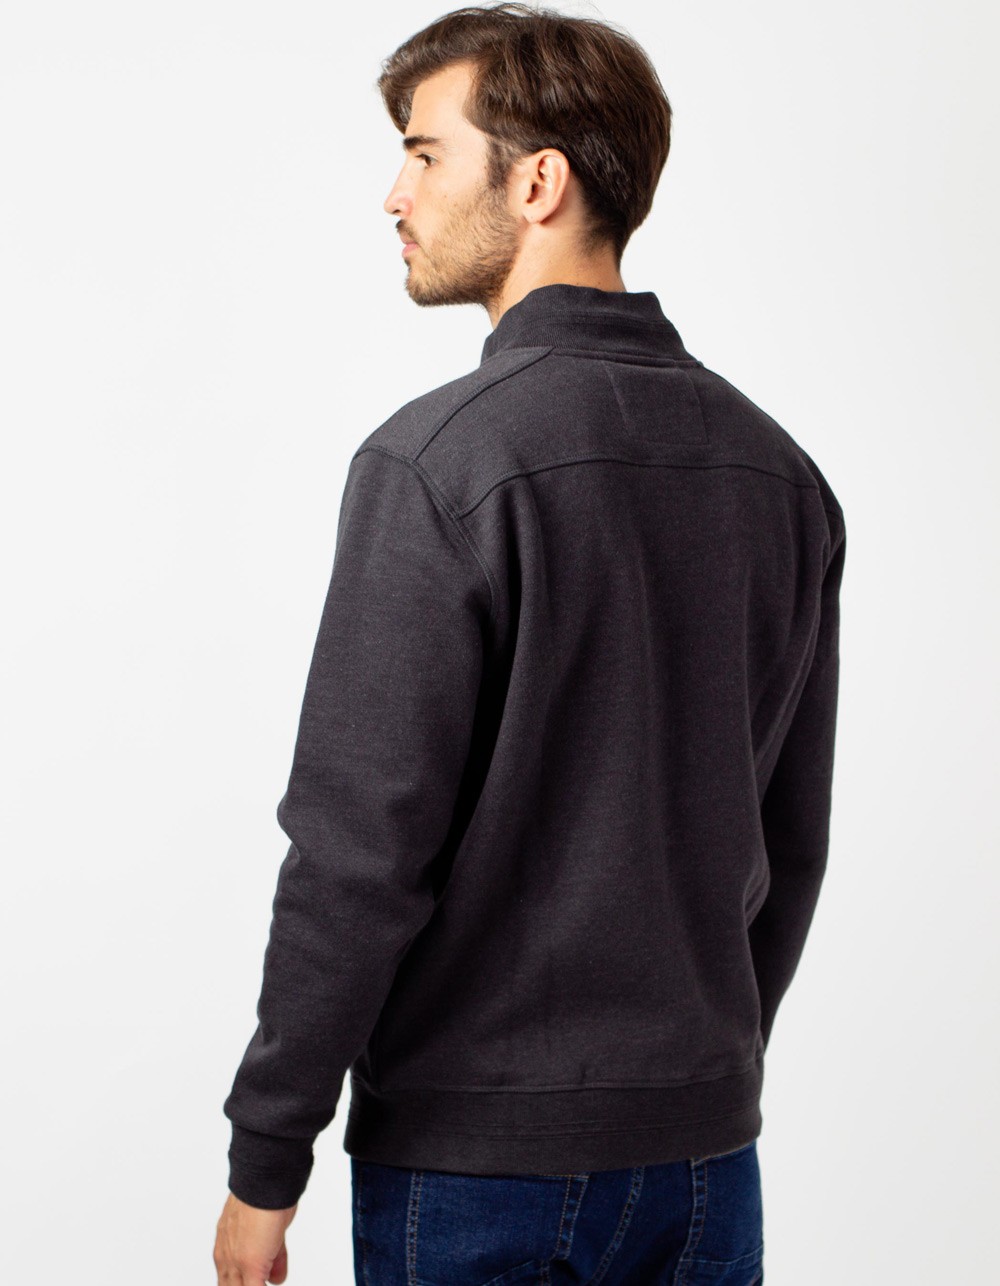 Grey zip jacket - Backside